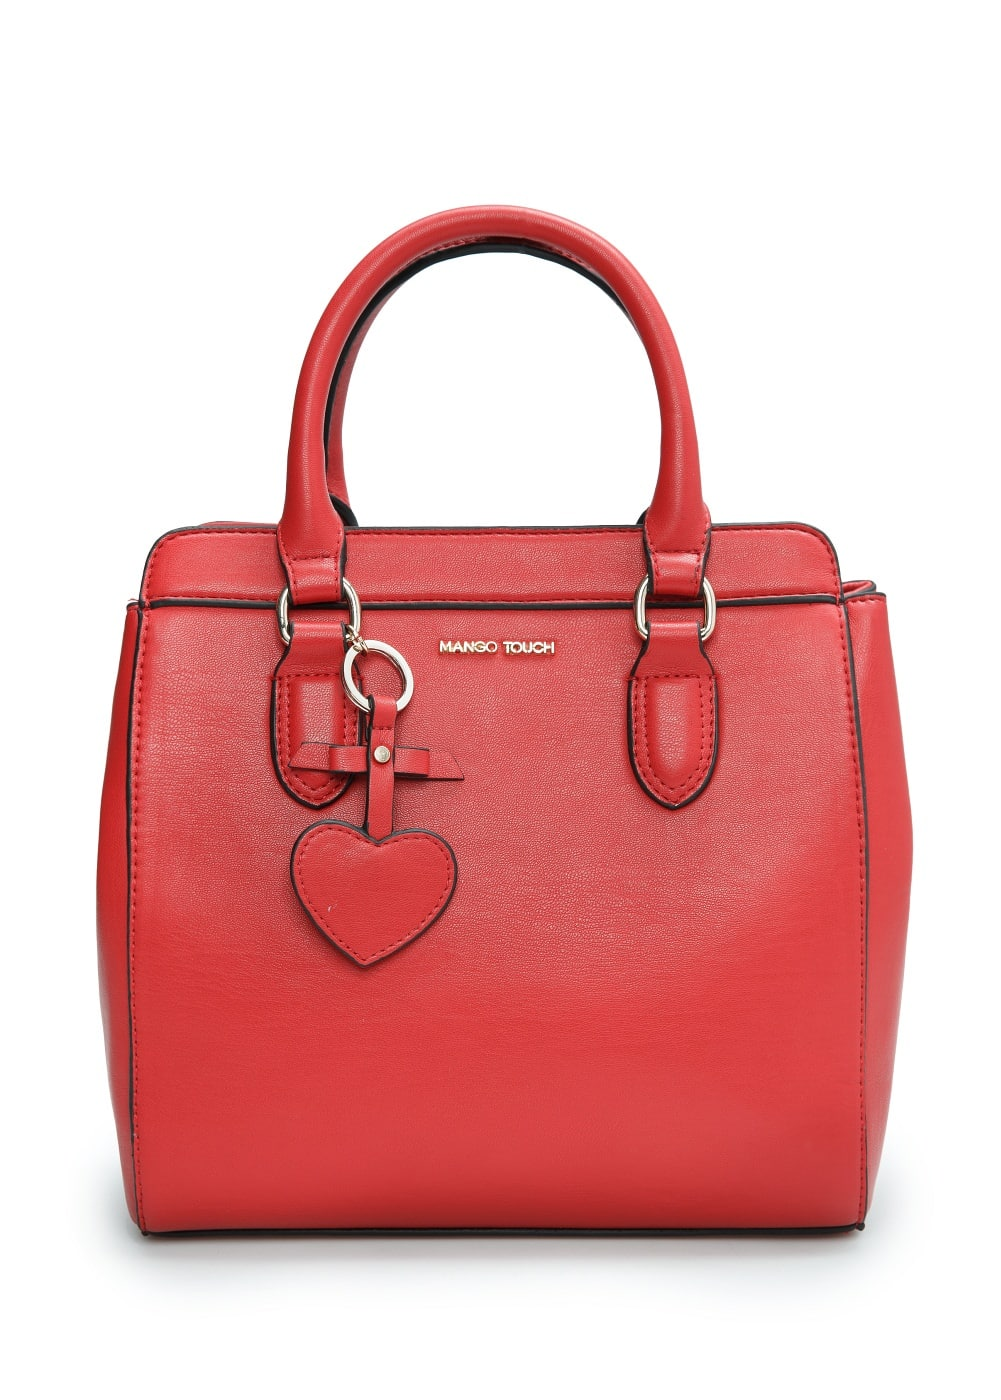 Heart key-ring bag